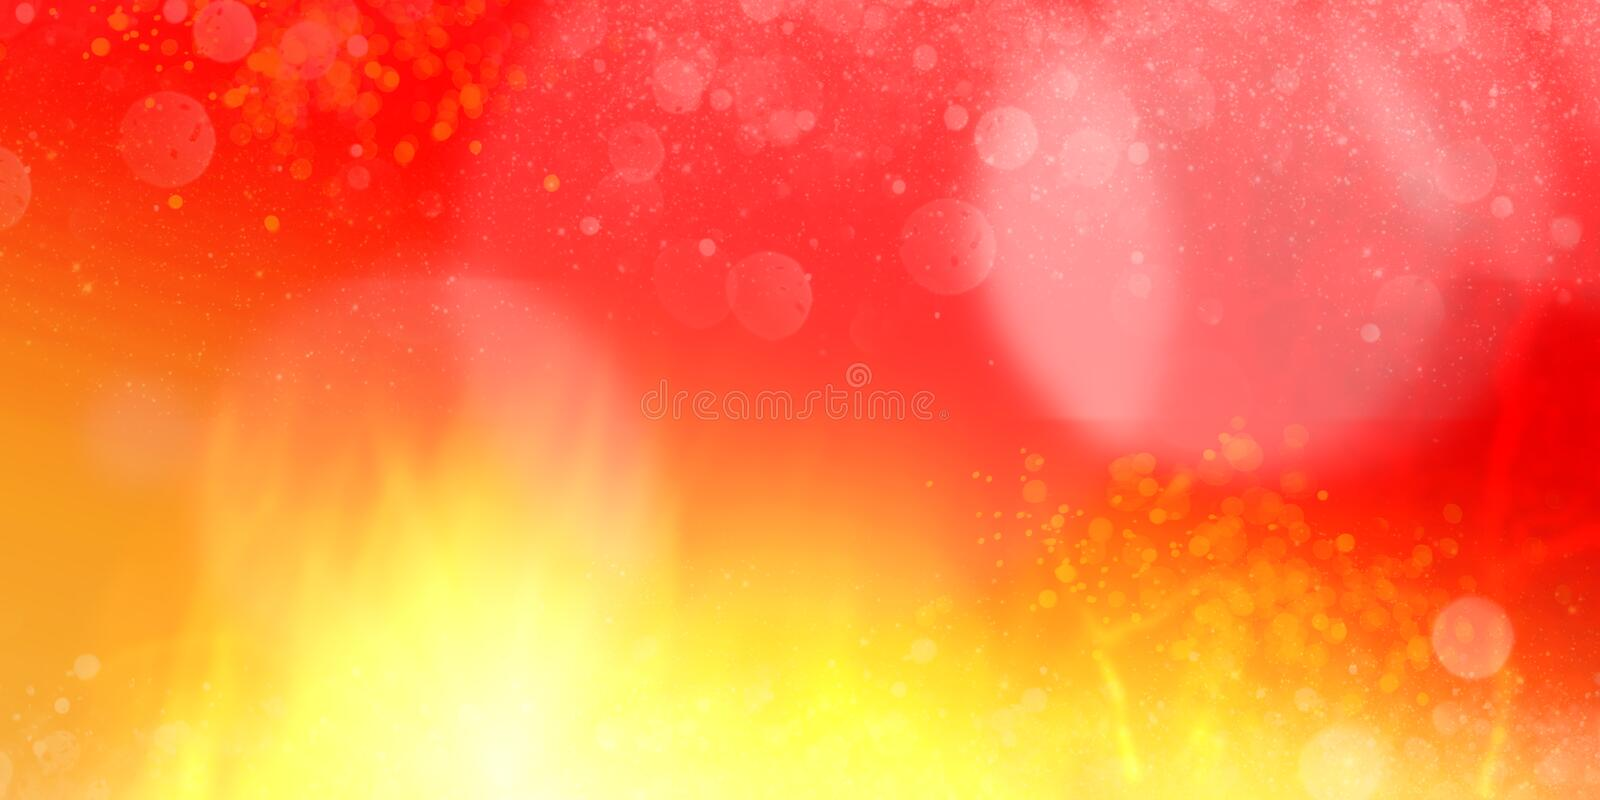 Horizontal red yellow fire flames abstract bg royalty free illustration